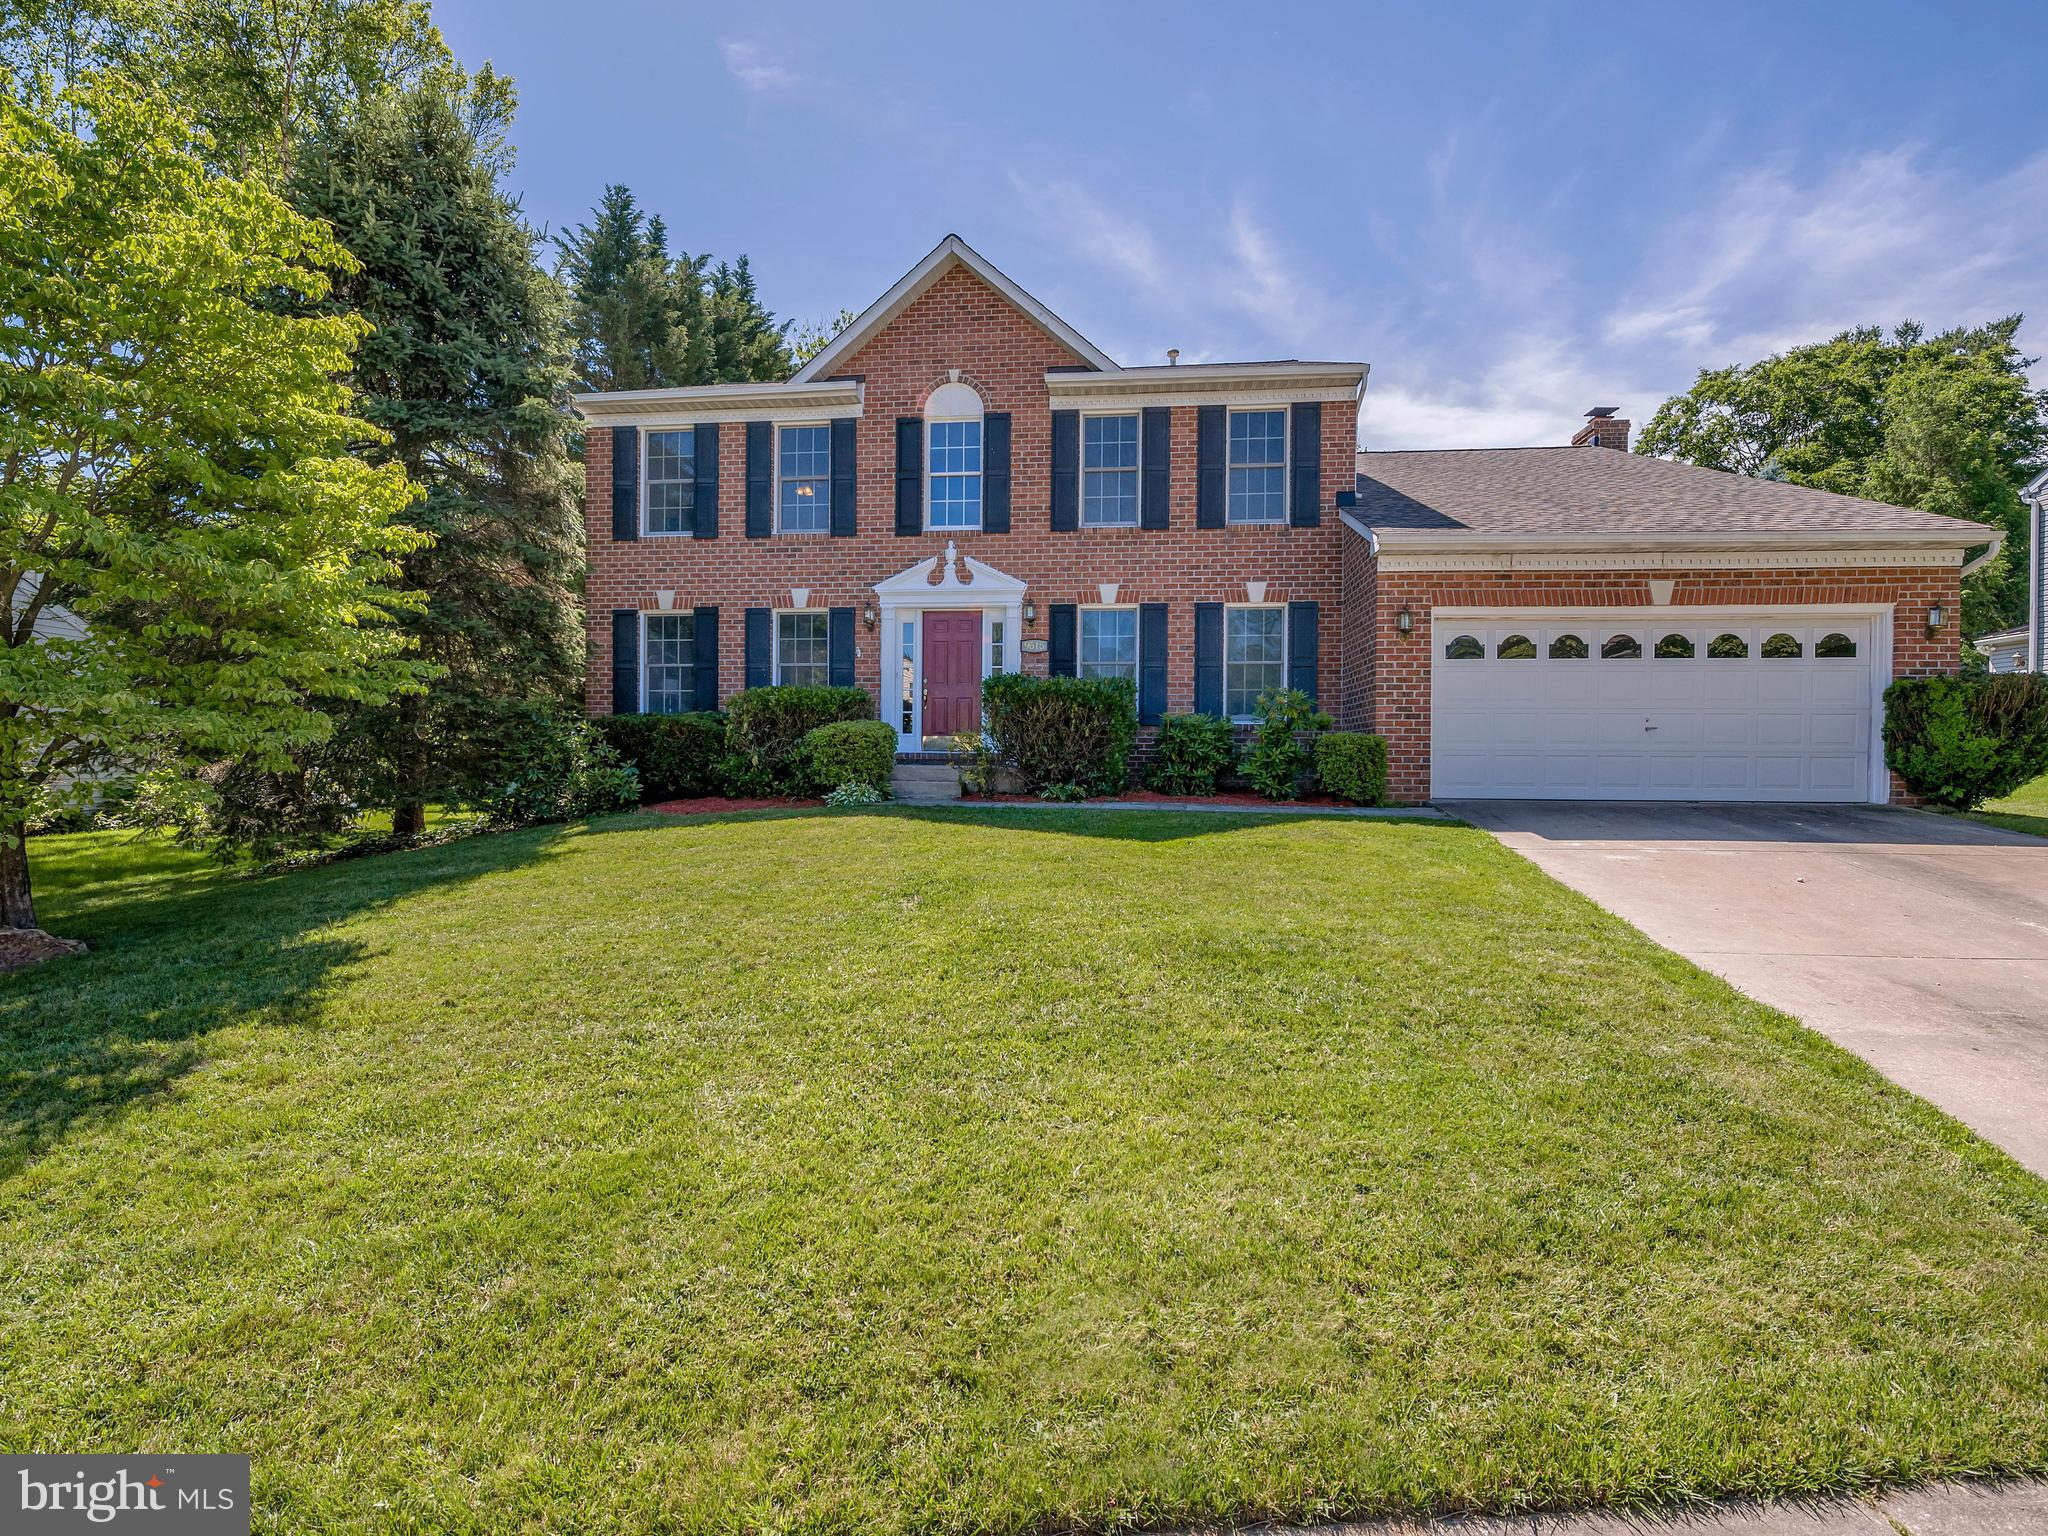 9515 WALTHAM WOODS ROAD, PARKVILLE, MD 21234